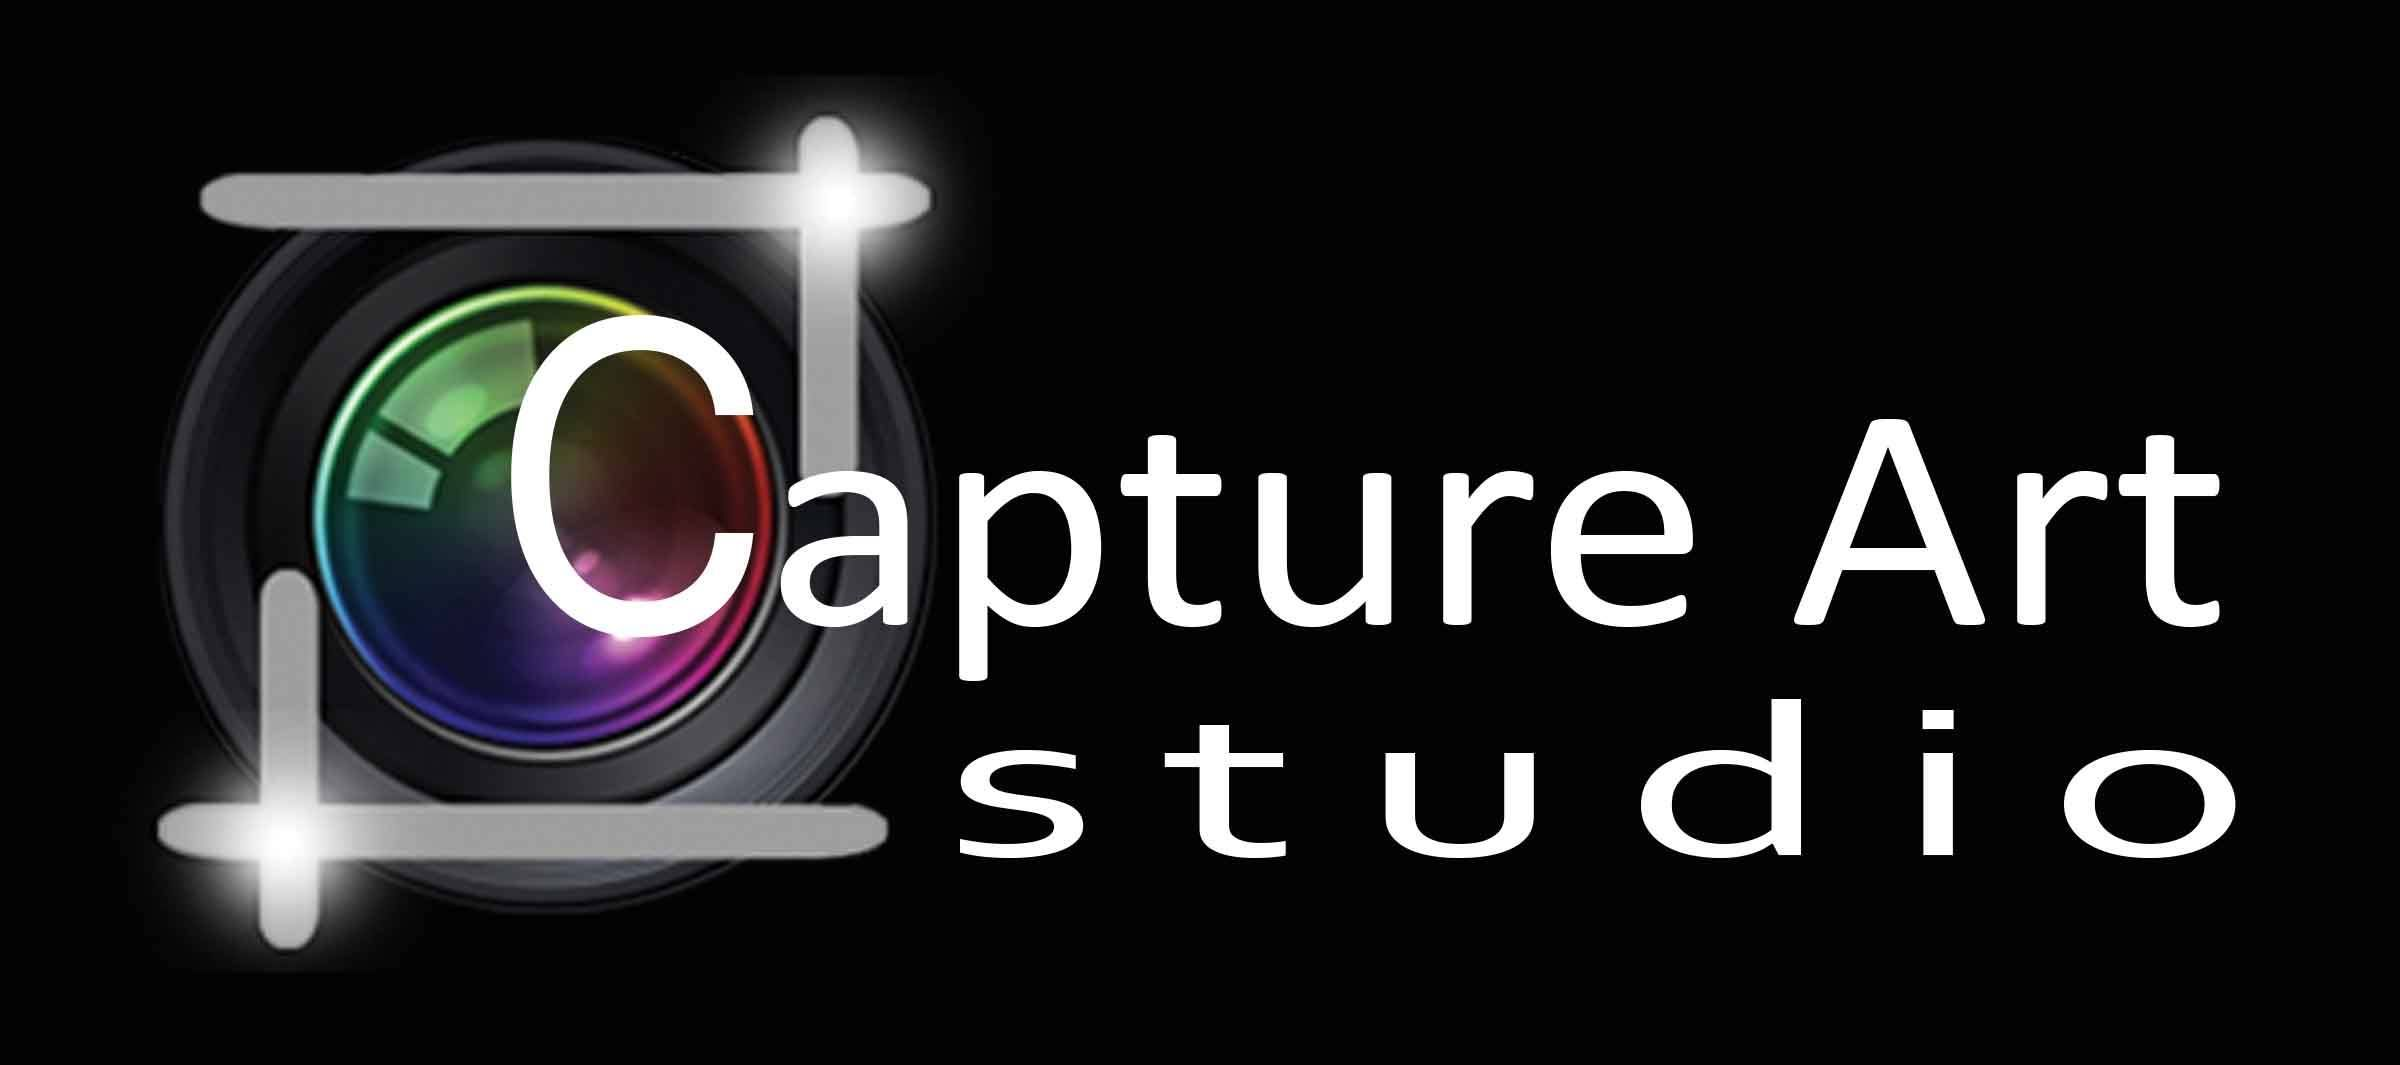 Capture art studio graphic designing video editing theory and practical  cbr   also it rh pinterest